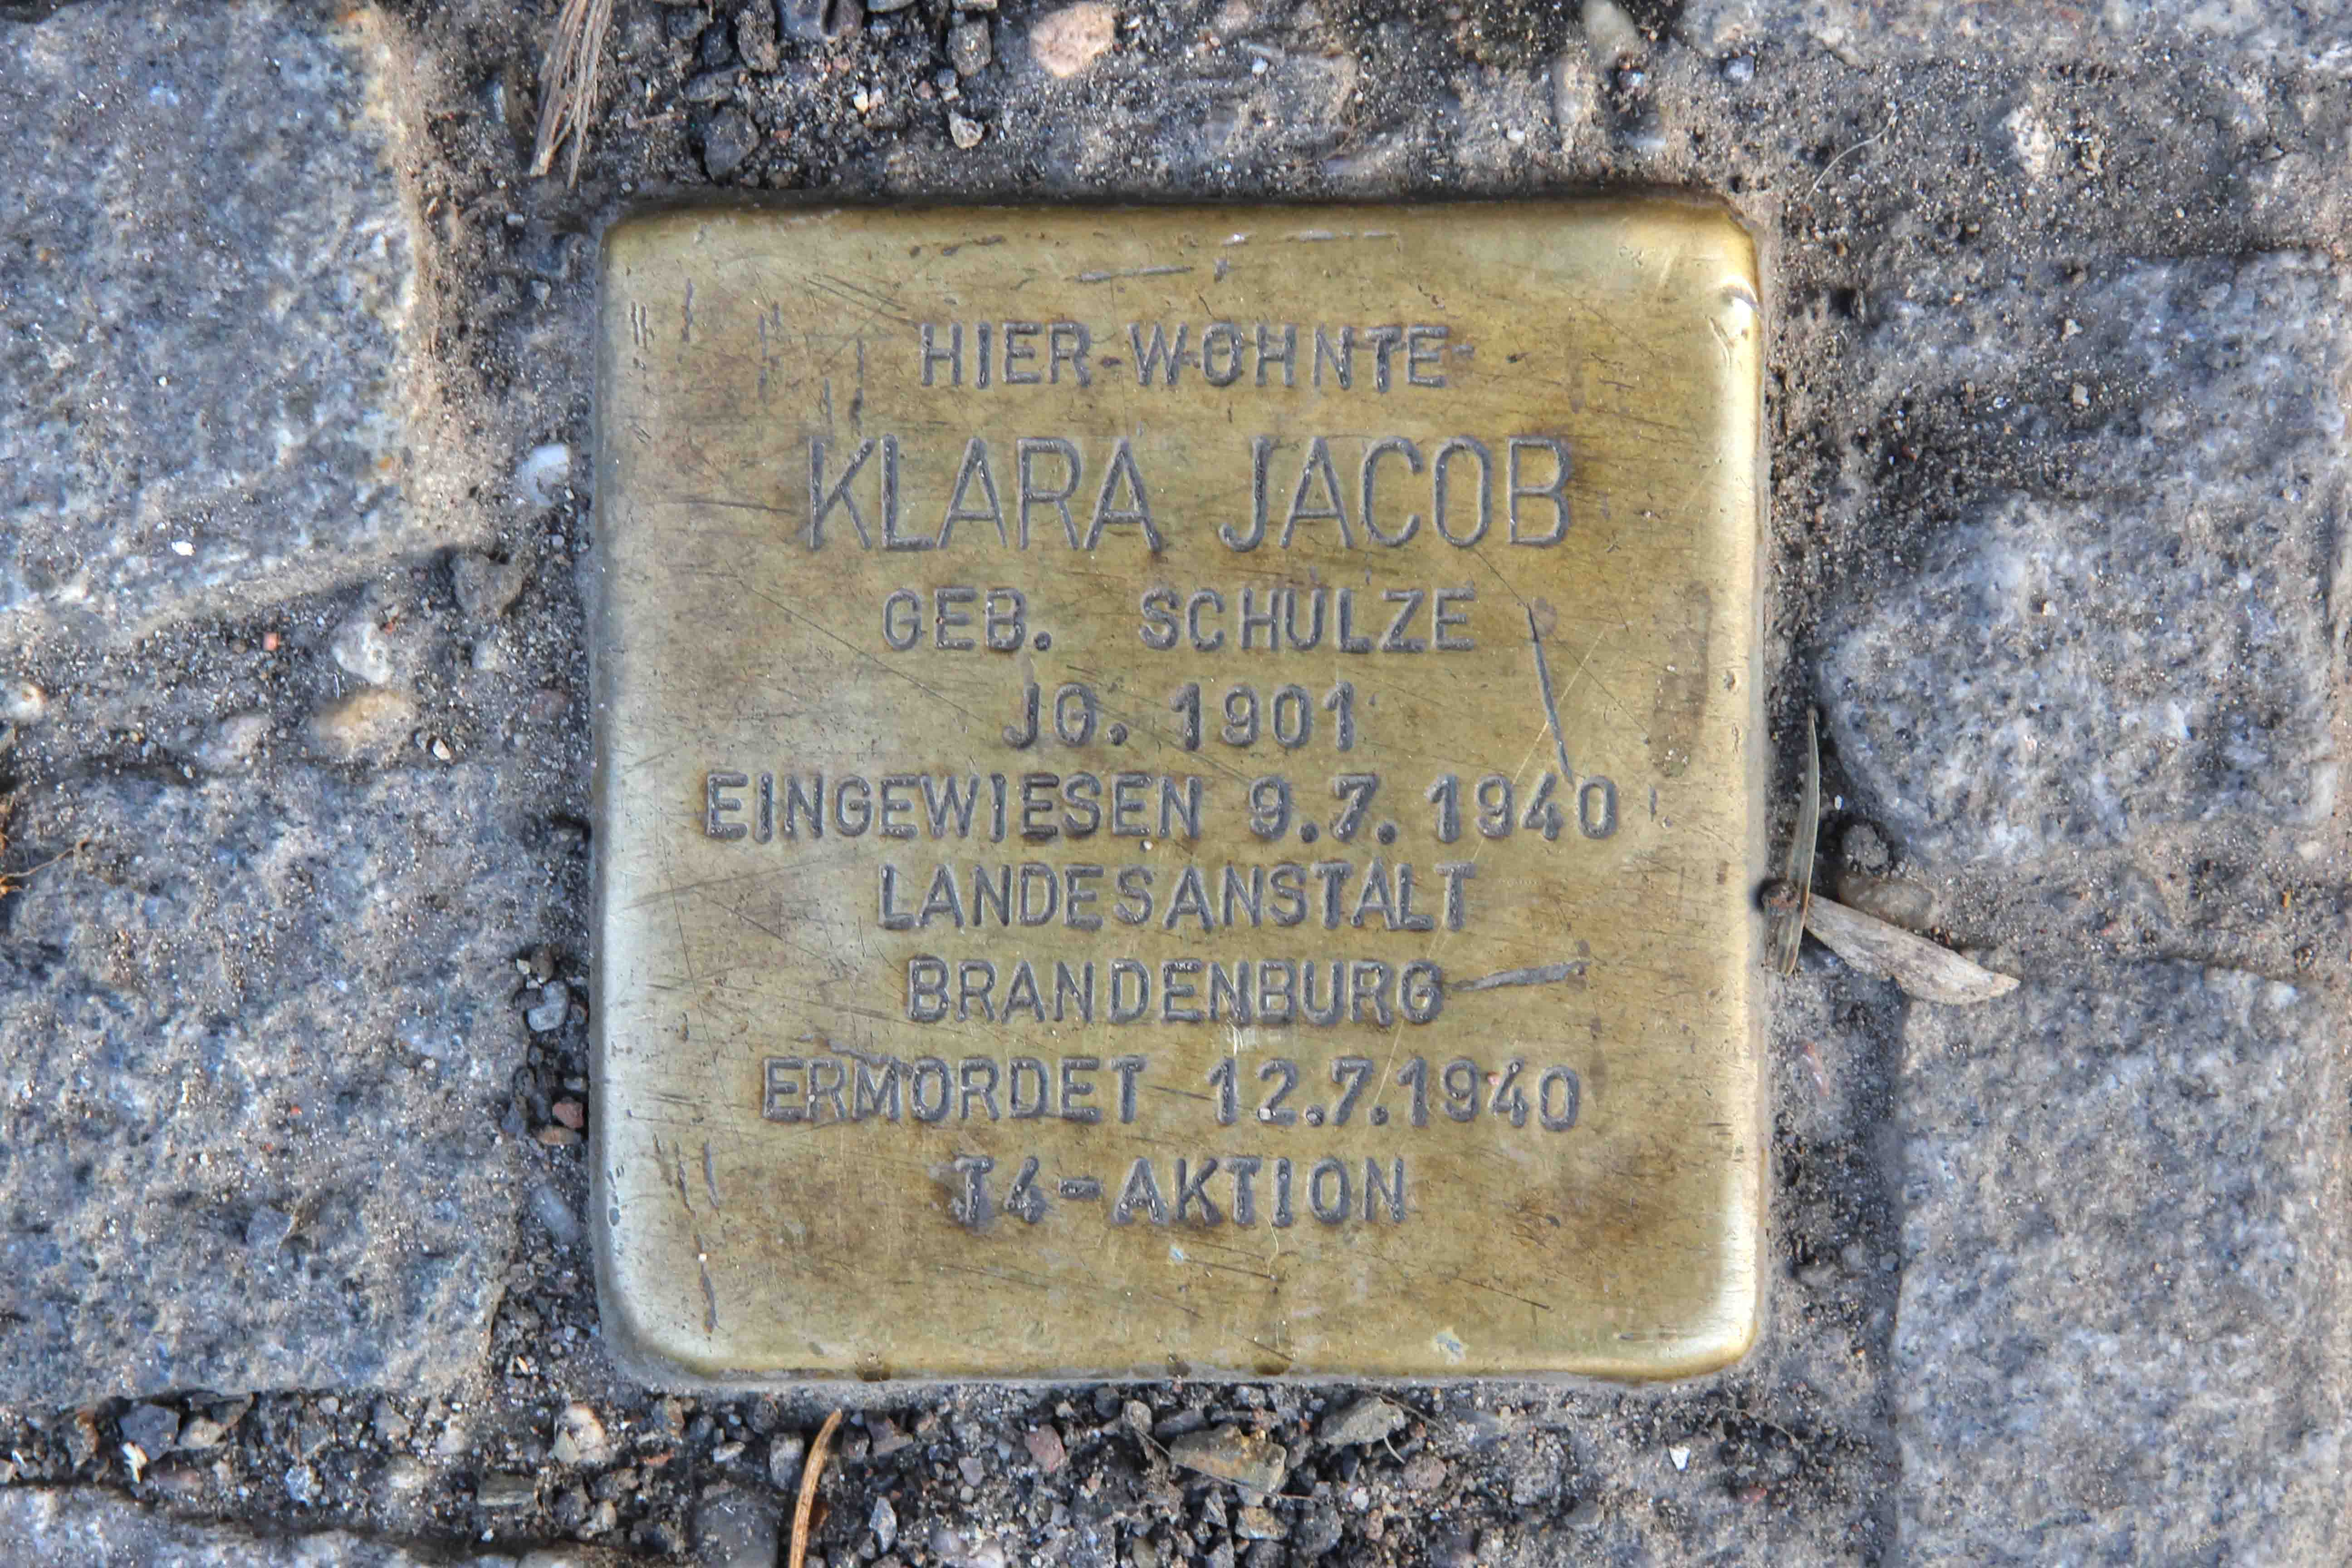 Stolpersteine Berlin 193: In memory of Klara Jacob (Silbersteinstrasse 97)